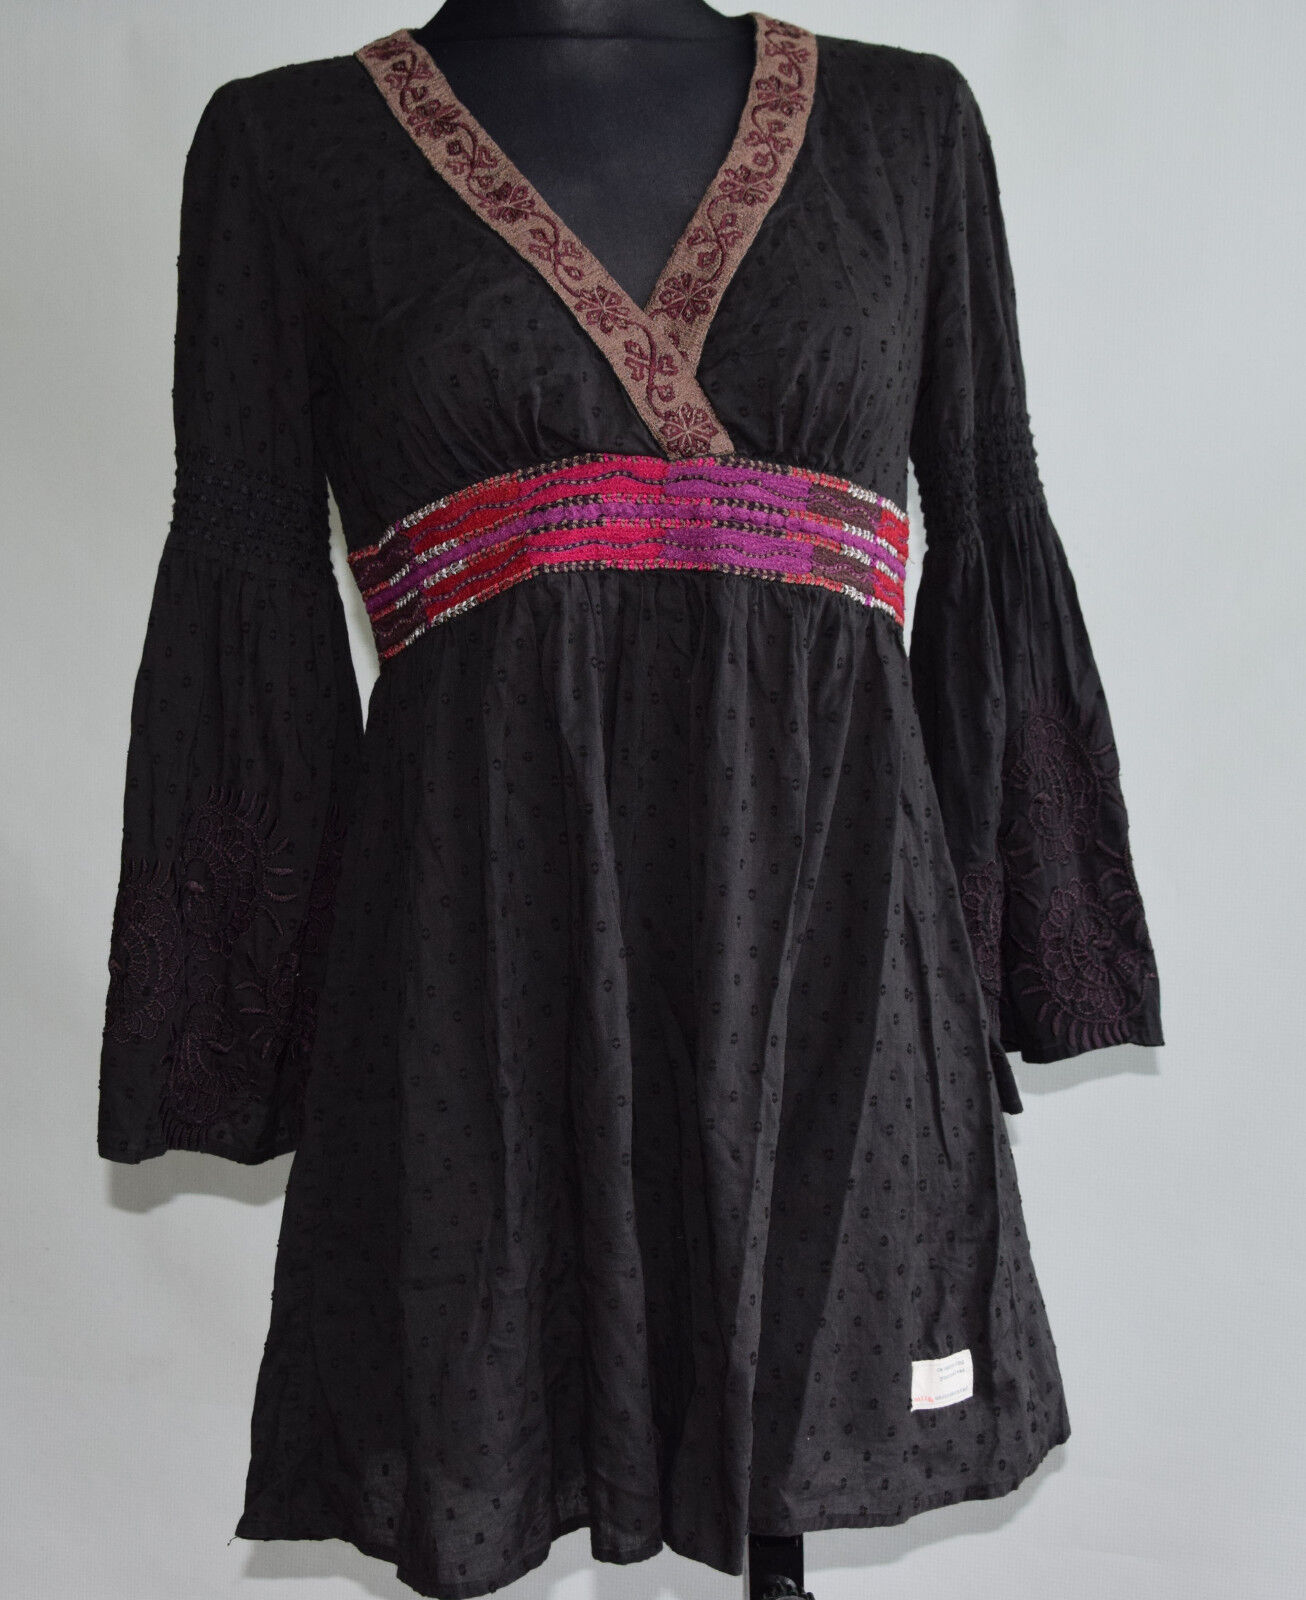 ODD MOLLY dress tunic schwarz 100% cotton FOLK HIPPIE BOHO embroiderot S small